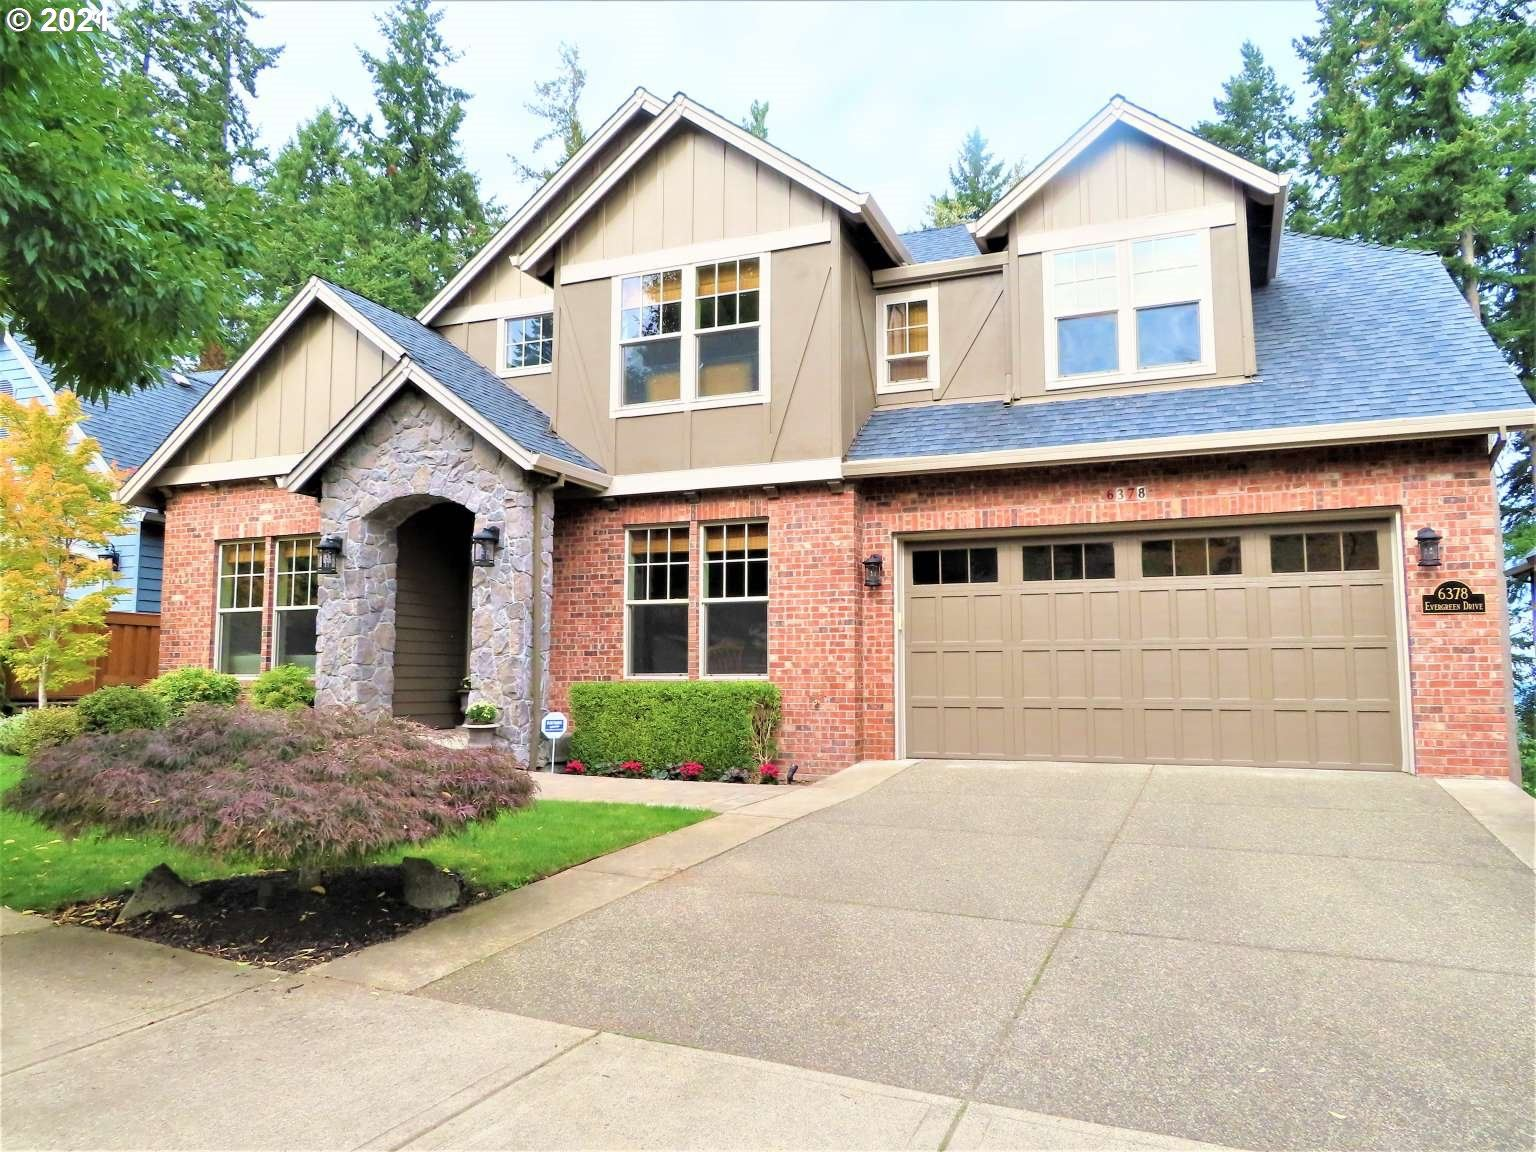 Photo of 6378 EVERGREEN DR, West Linn, OR 97068 (MLS # 21338710)